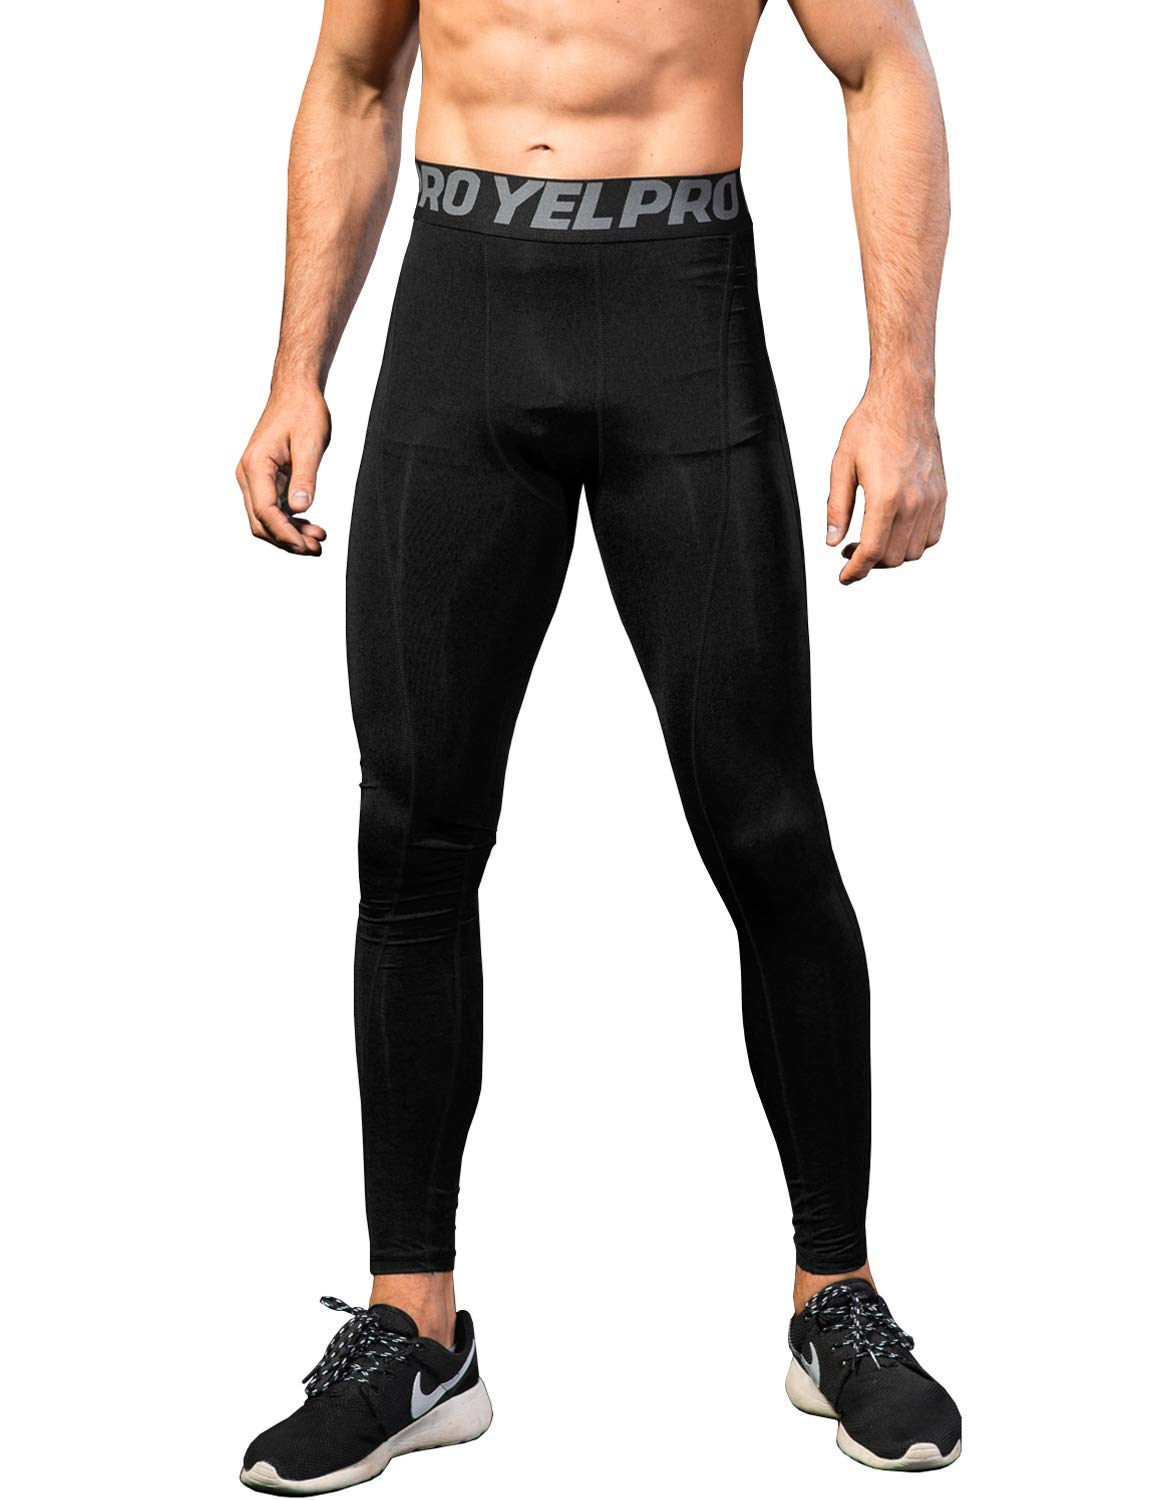 Lavento Men's Compression Pants Baselayer Cool Dry Running Ankle Leggings Active Tights (1 Pack-1060 Black,2X-Large)